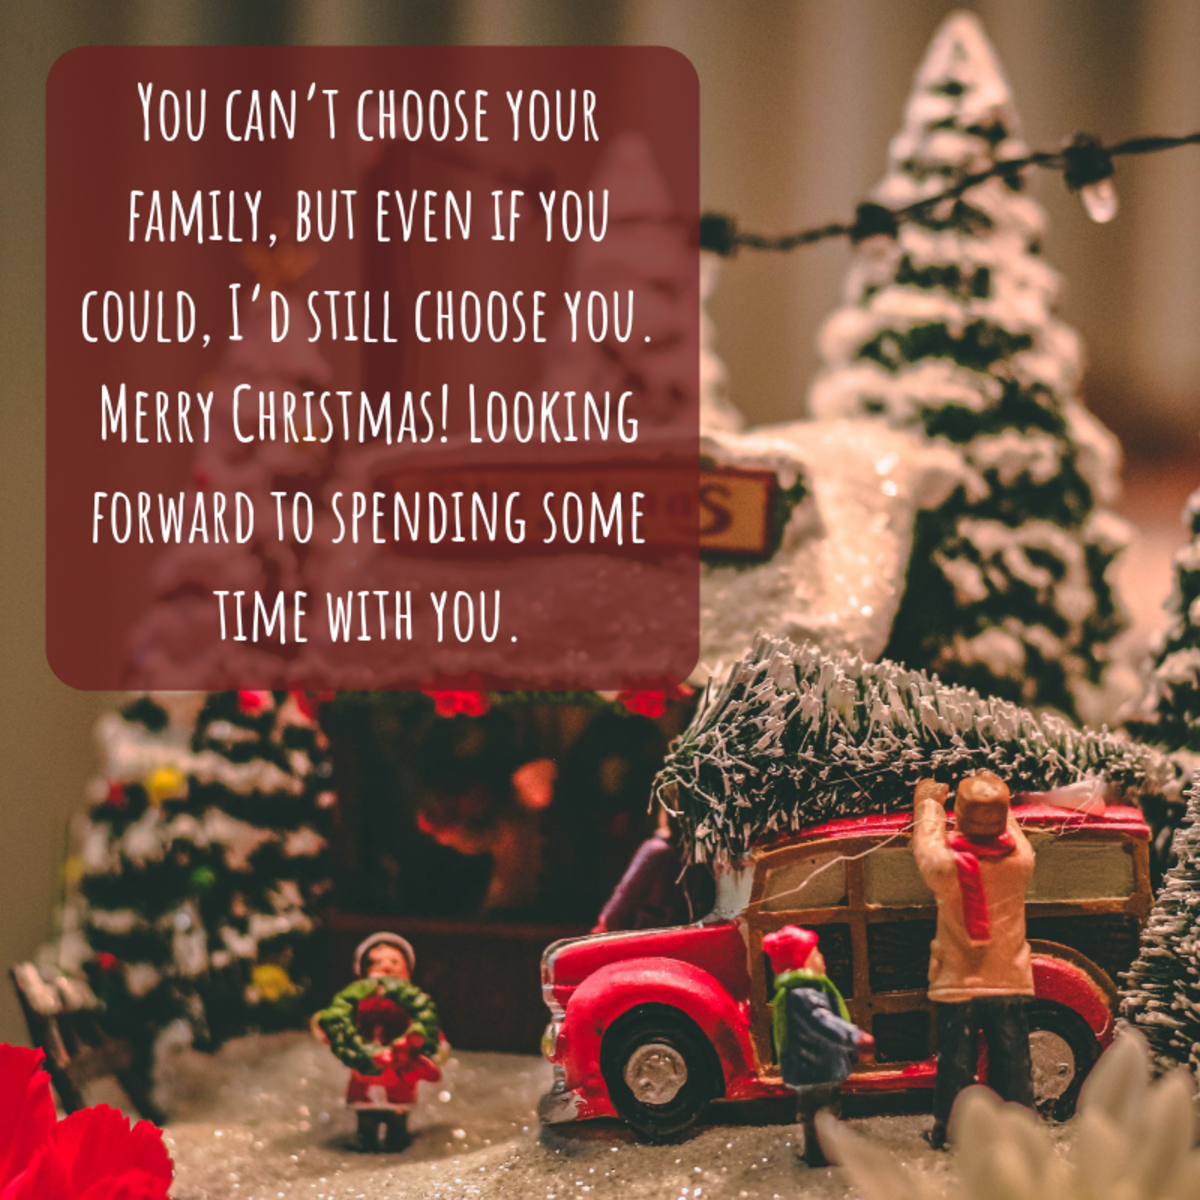 If you can't be with your family this Holiday season, send them a Christmas card to let them know how much they mean to you.